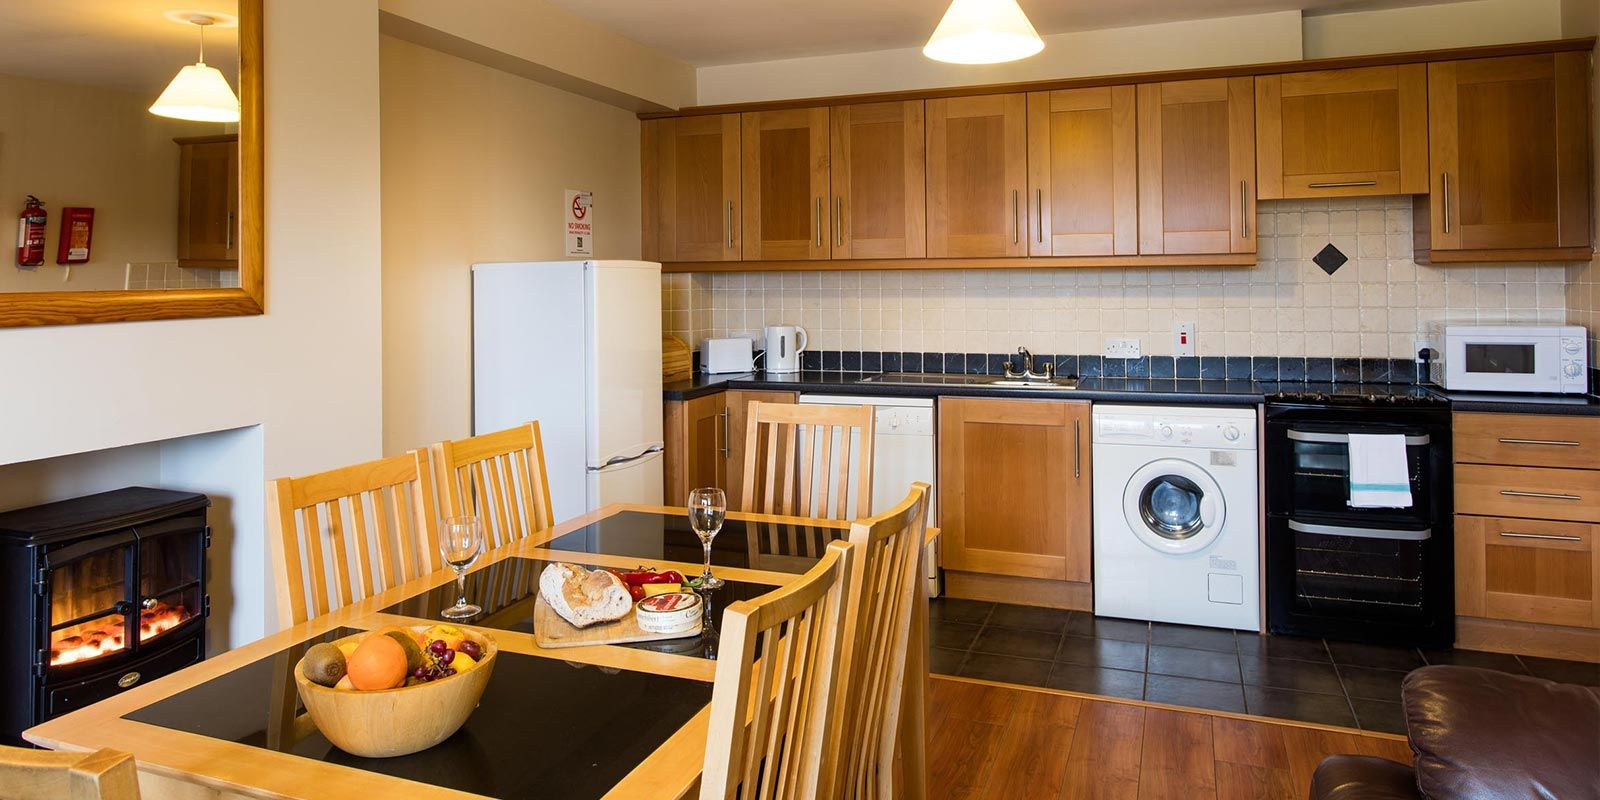 Holiday Home Kitchen At Quality Hotel In Youghal